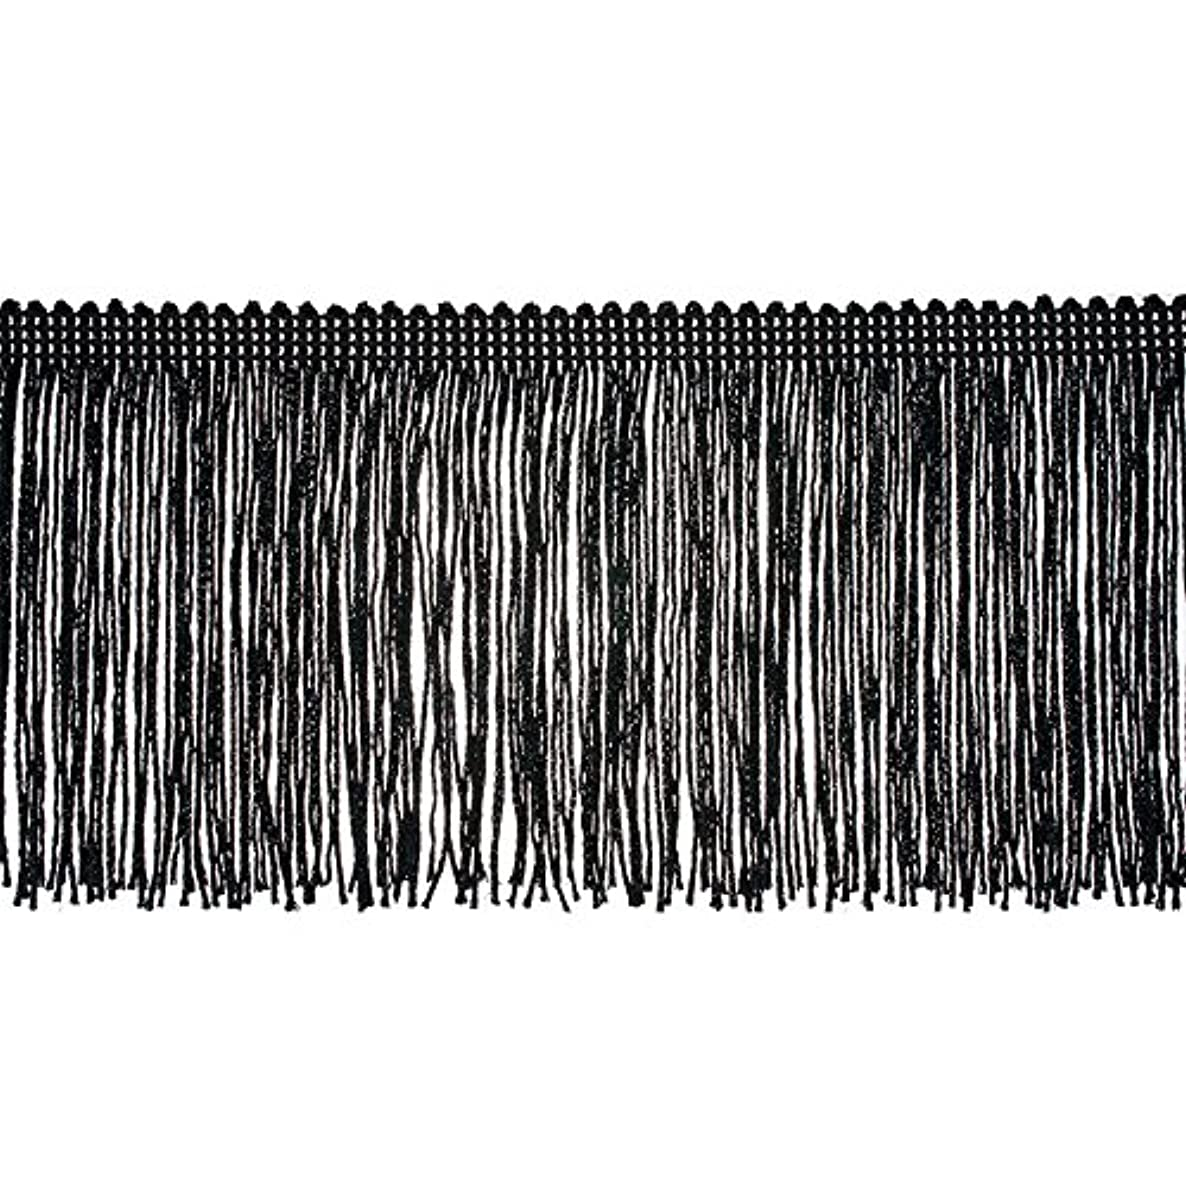 Decorative Trimmings 100% Rayon Chainette Fringe, 4